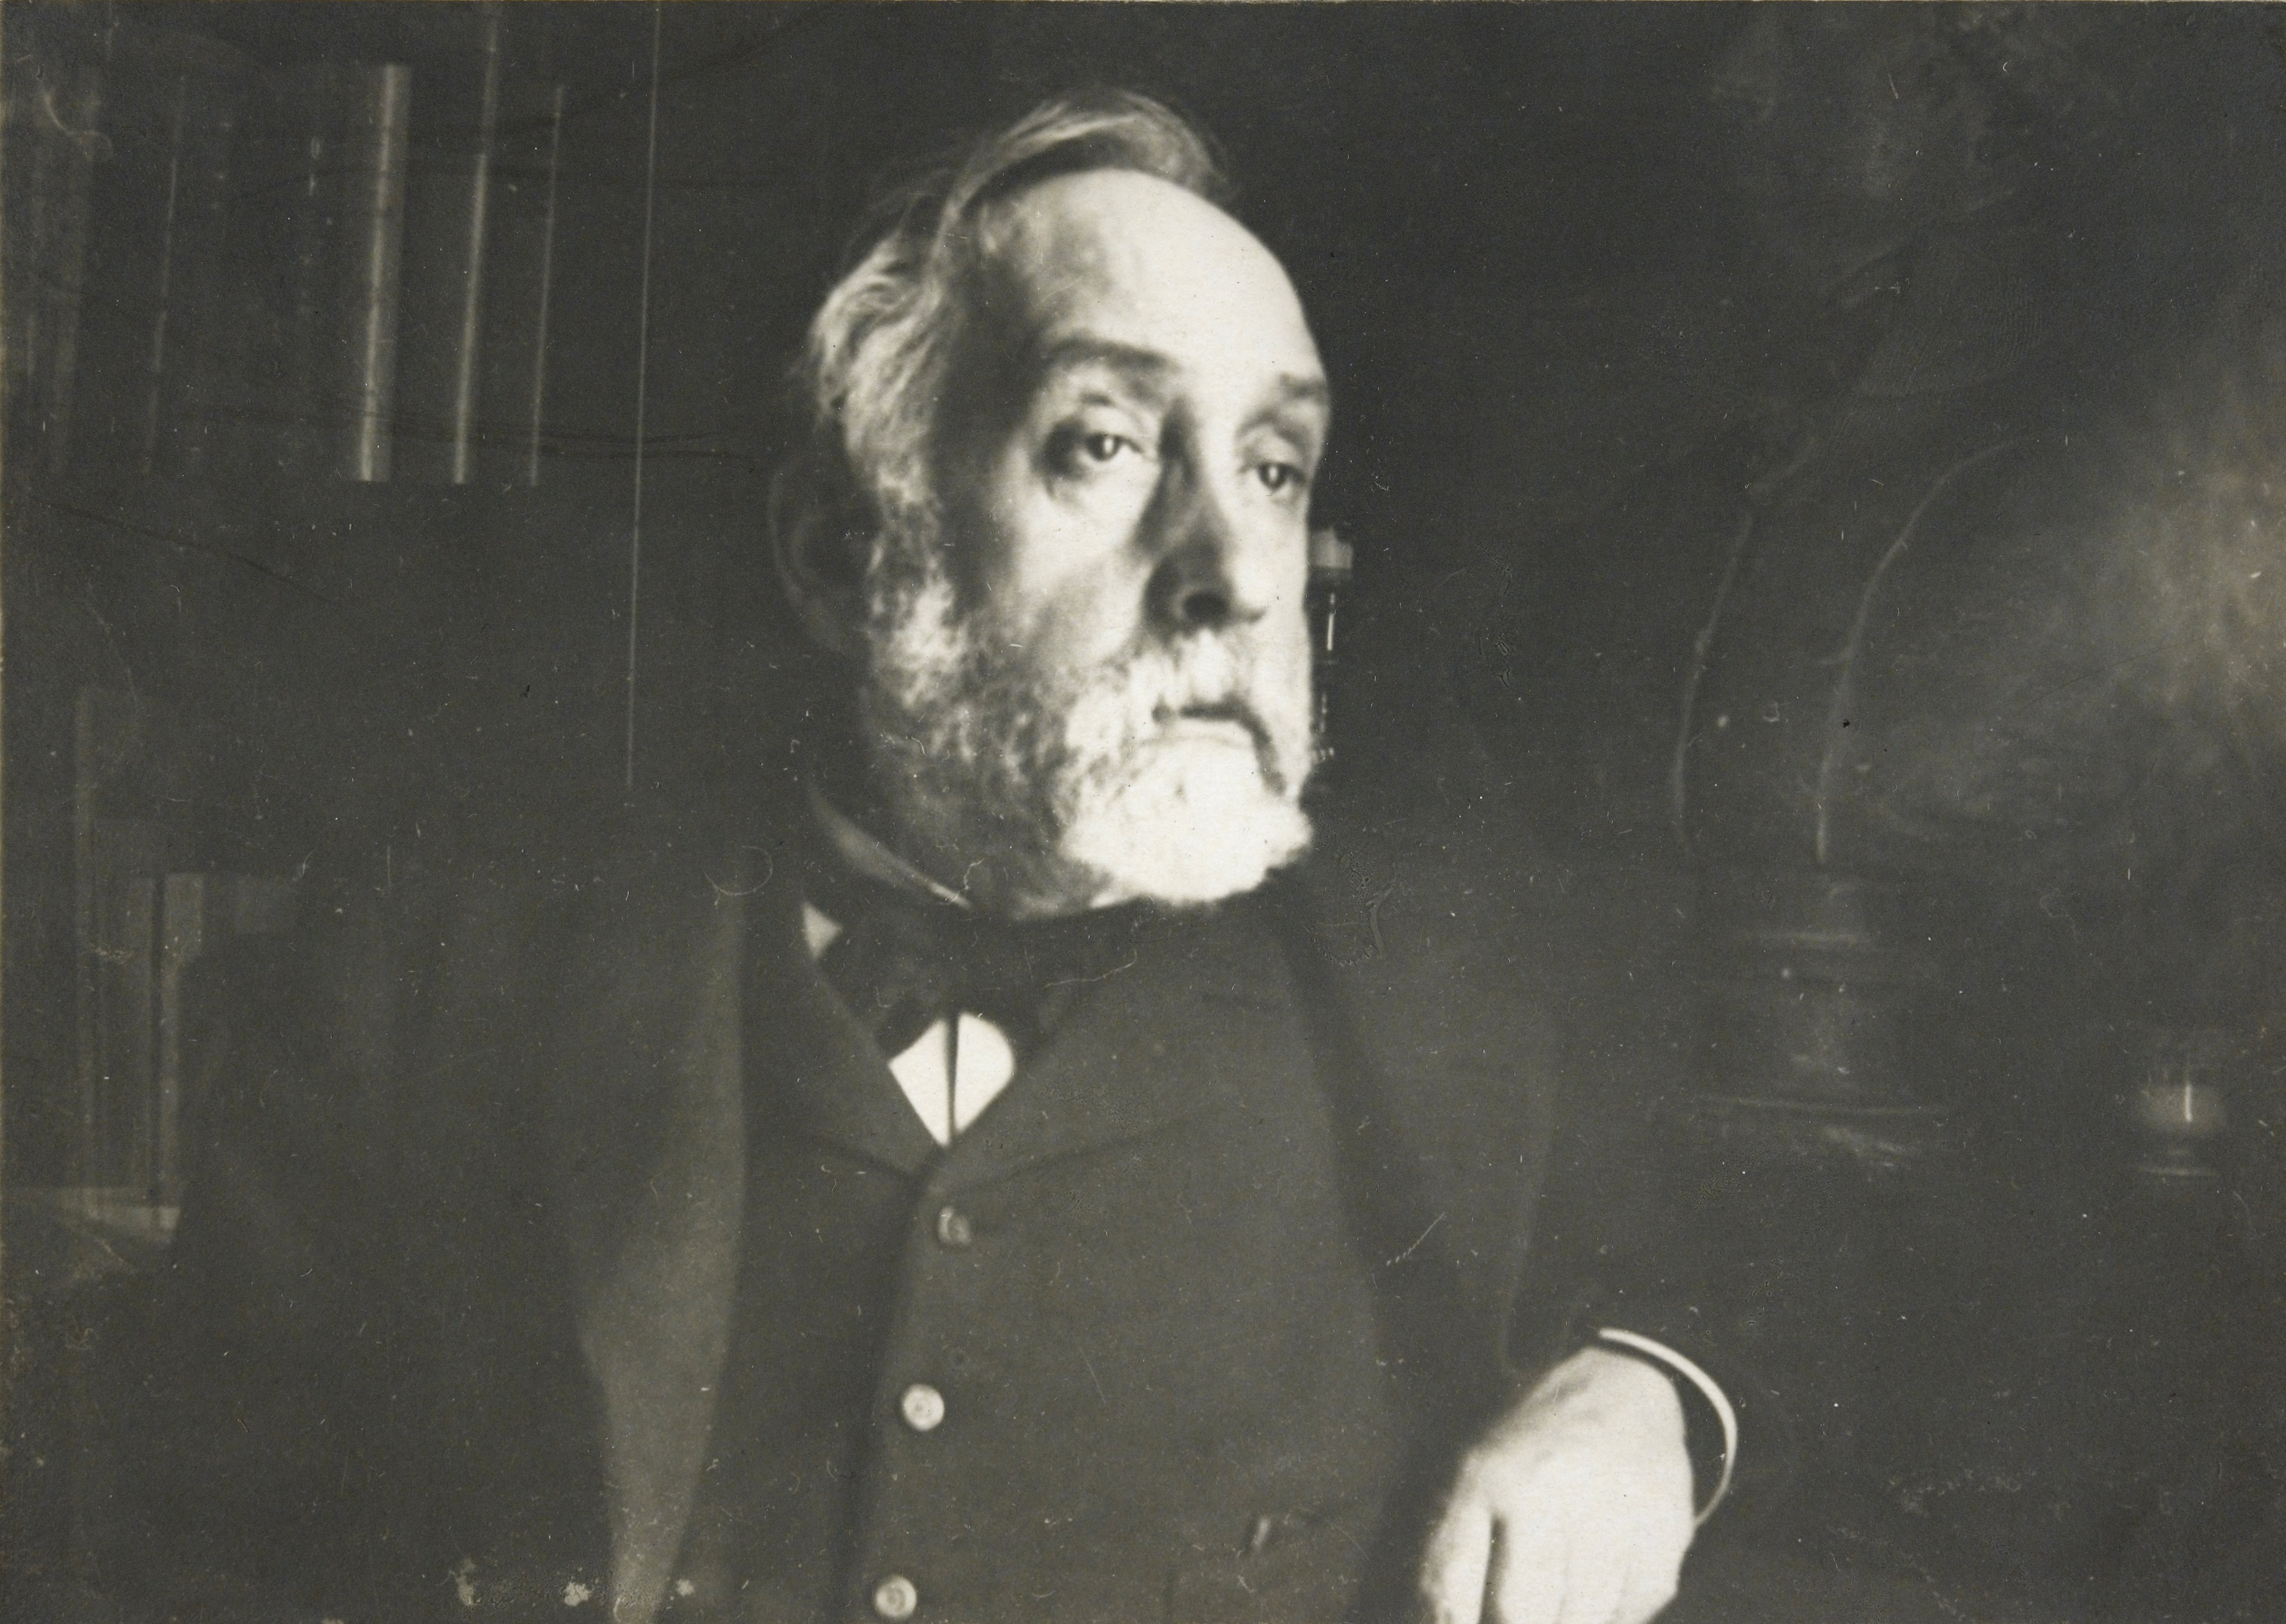 Degas self portrait, black and white image of the famous artist